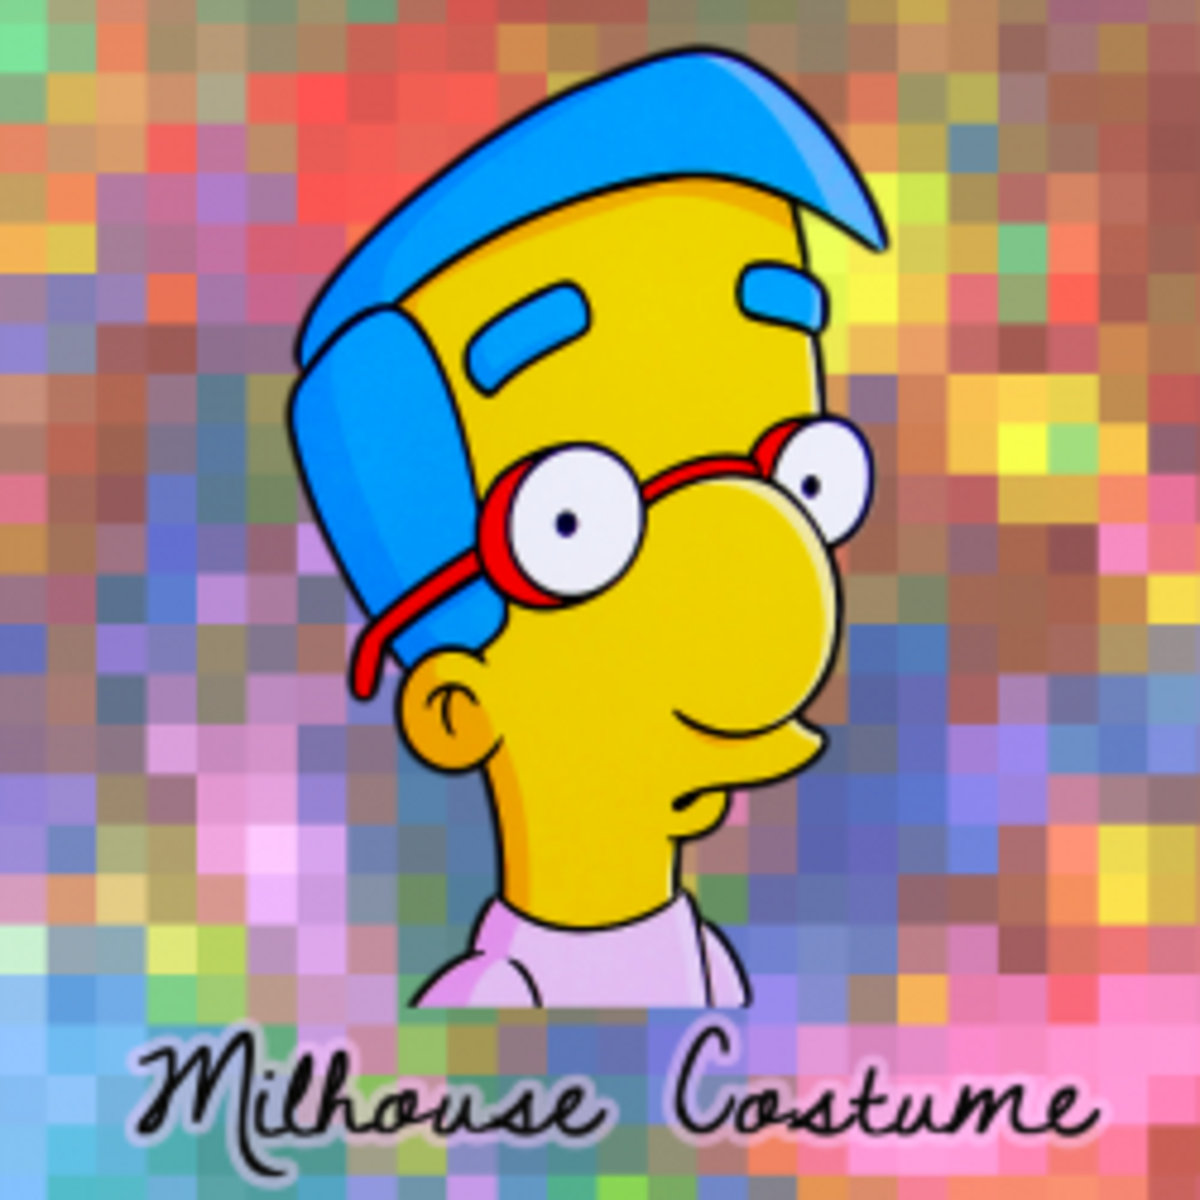 How to Make a Milhouse Costume